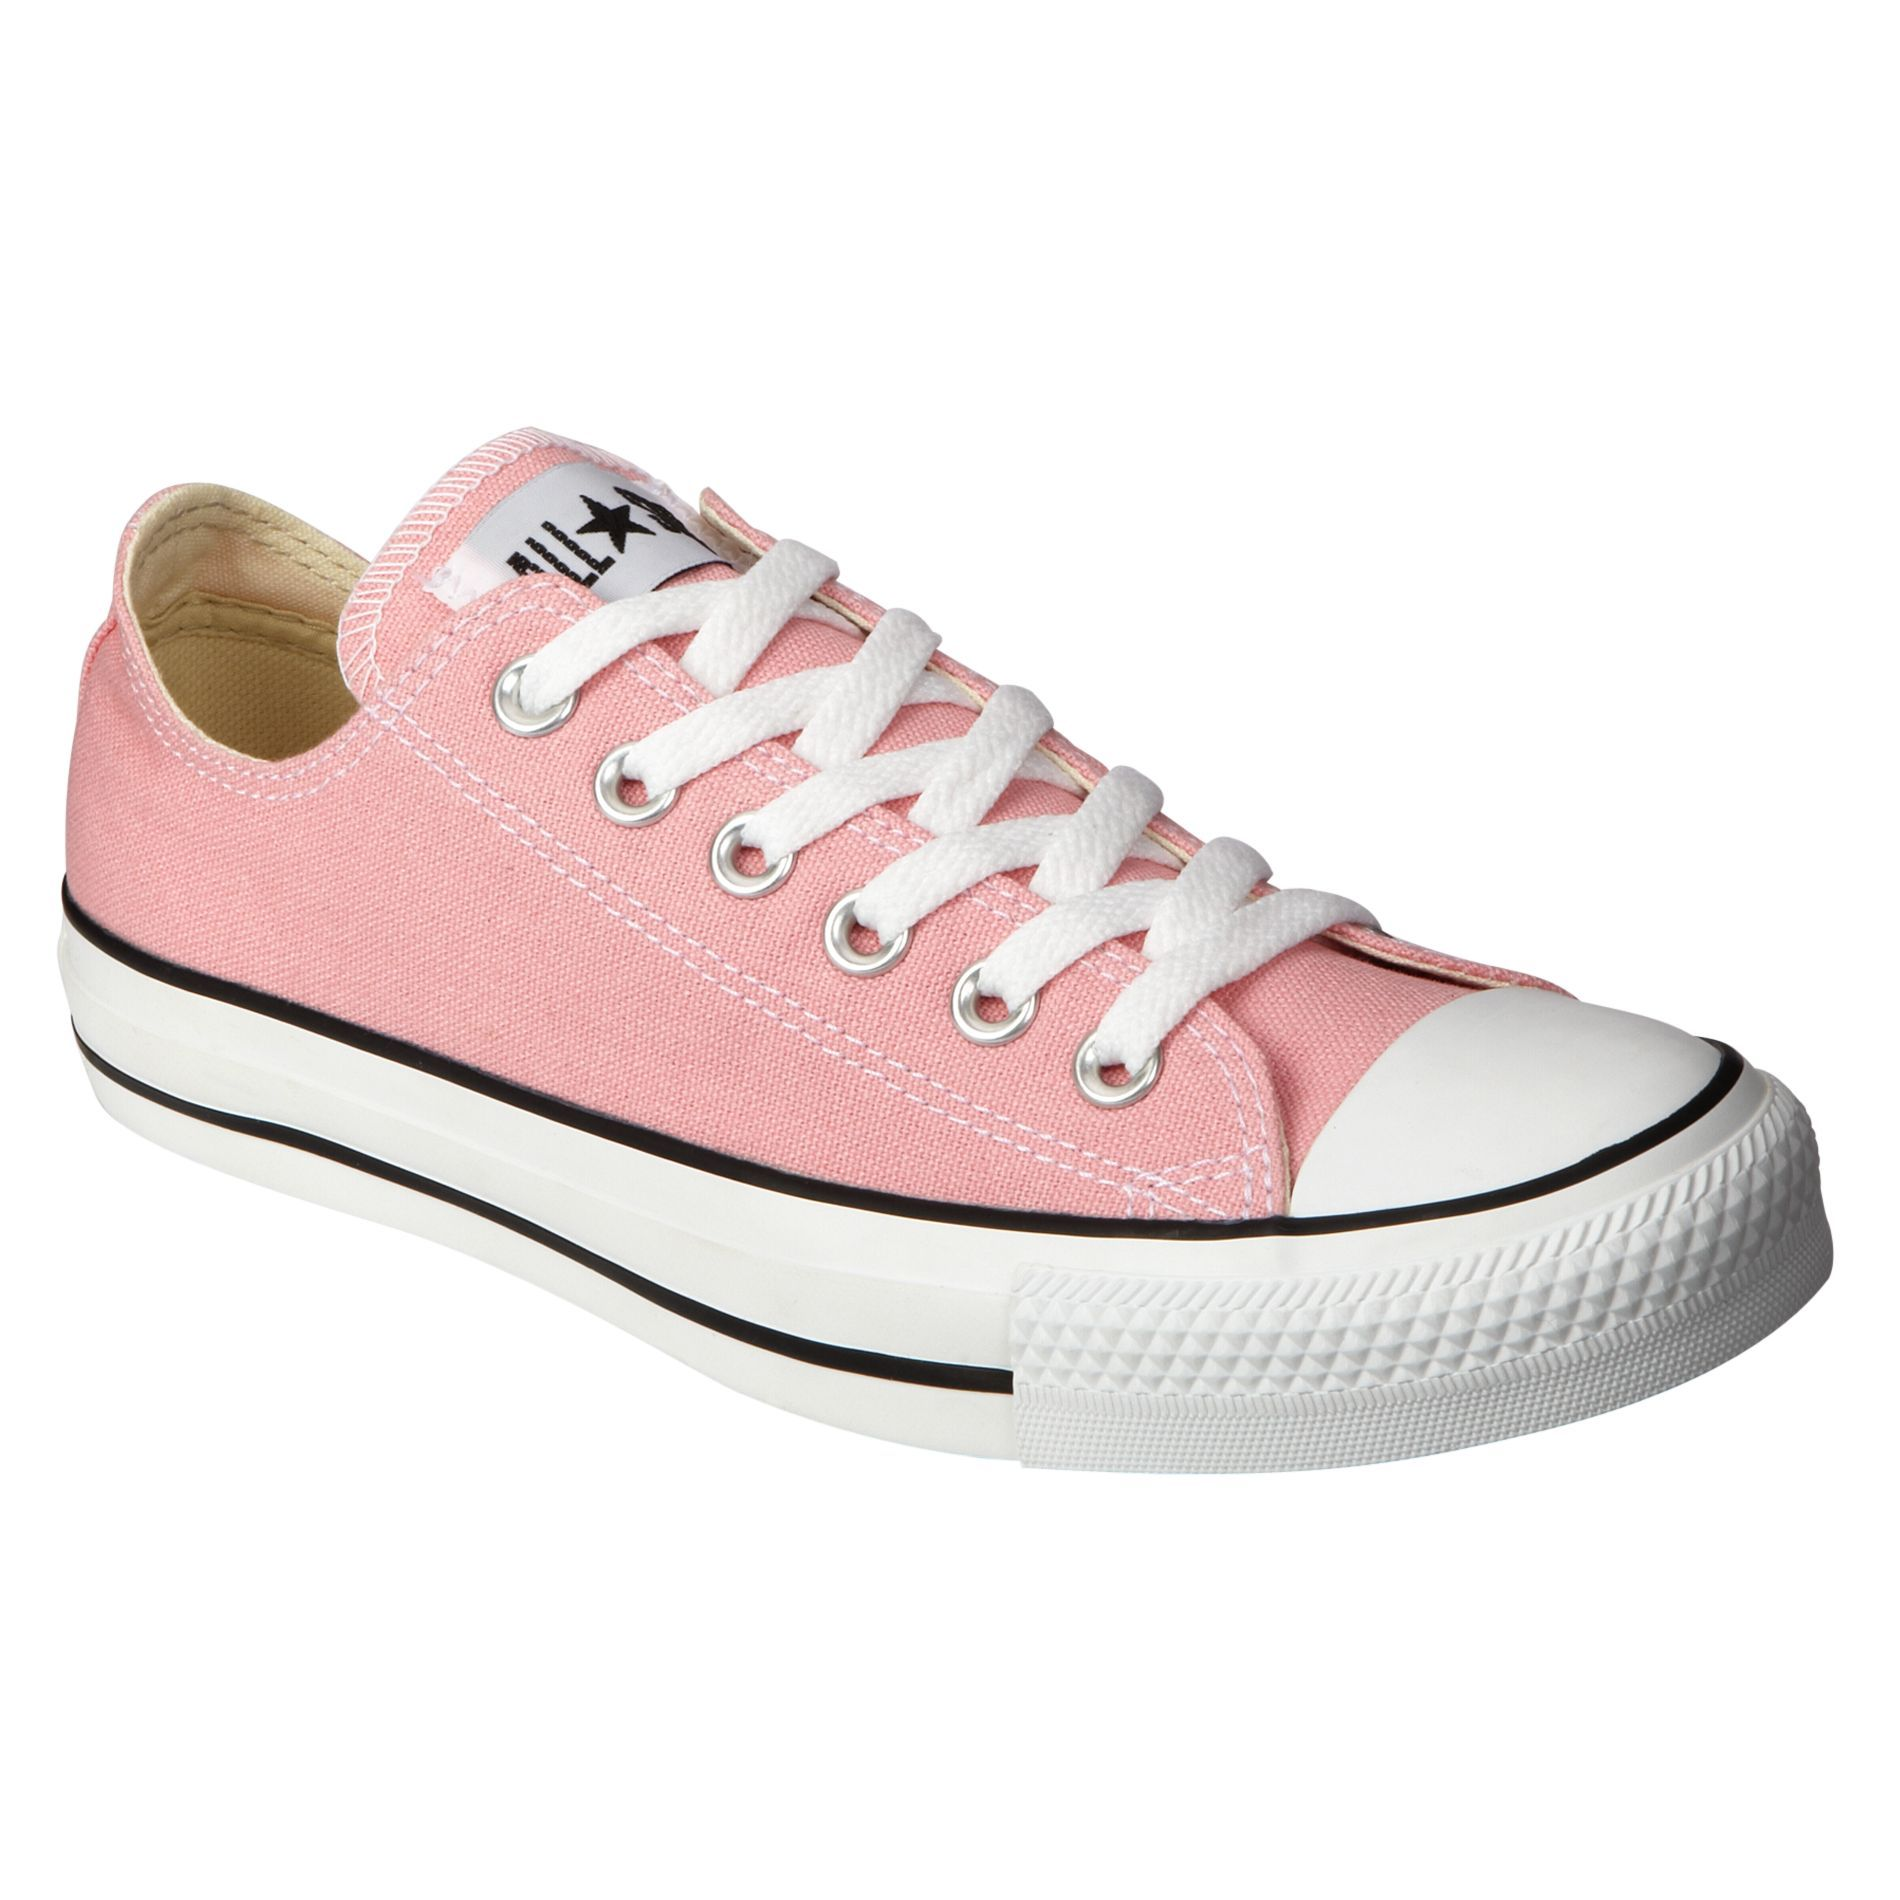 9ce589963e93 Pink Converse All Star Shoes - Pink Chuck Taylor Converse Canvas Trainers  Women and Men